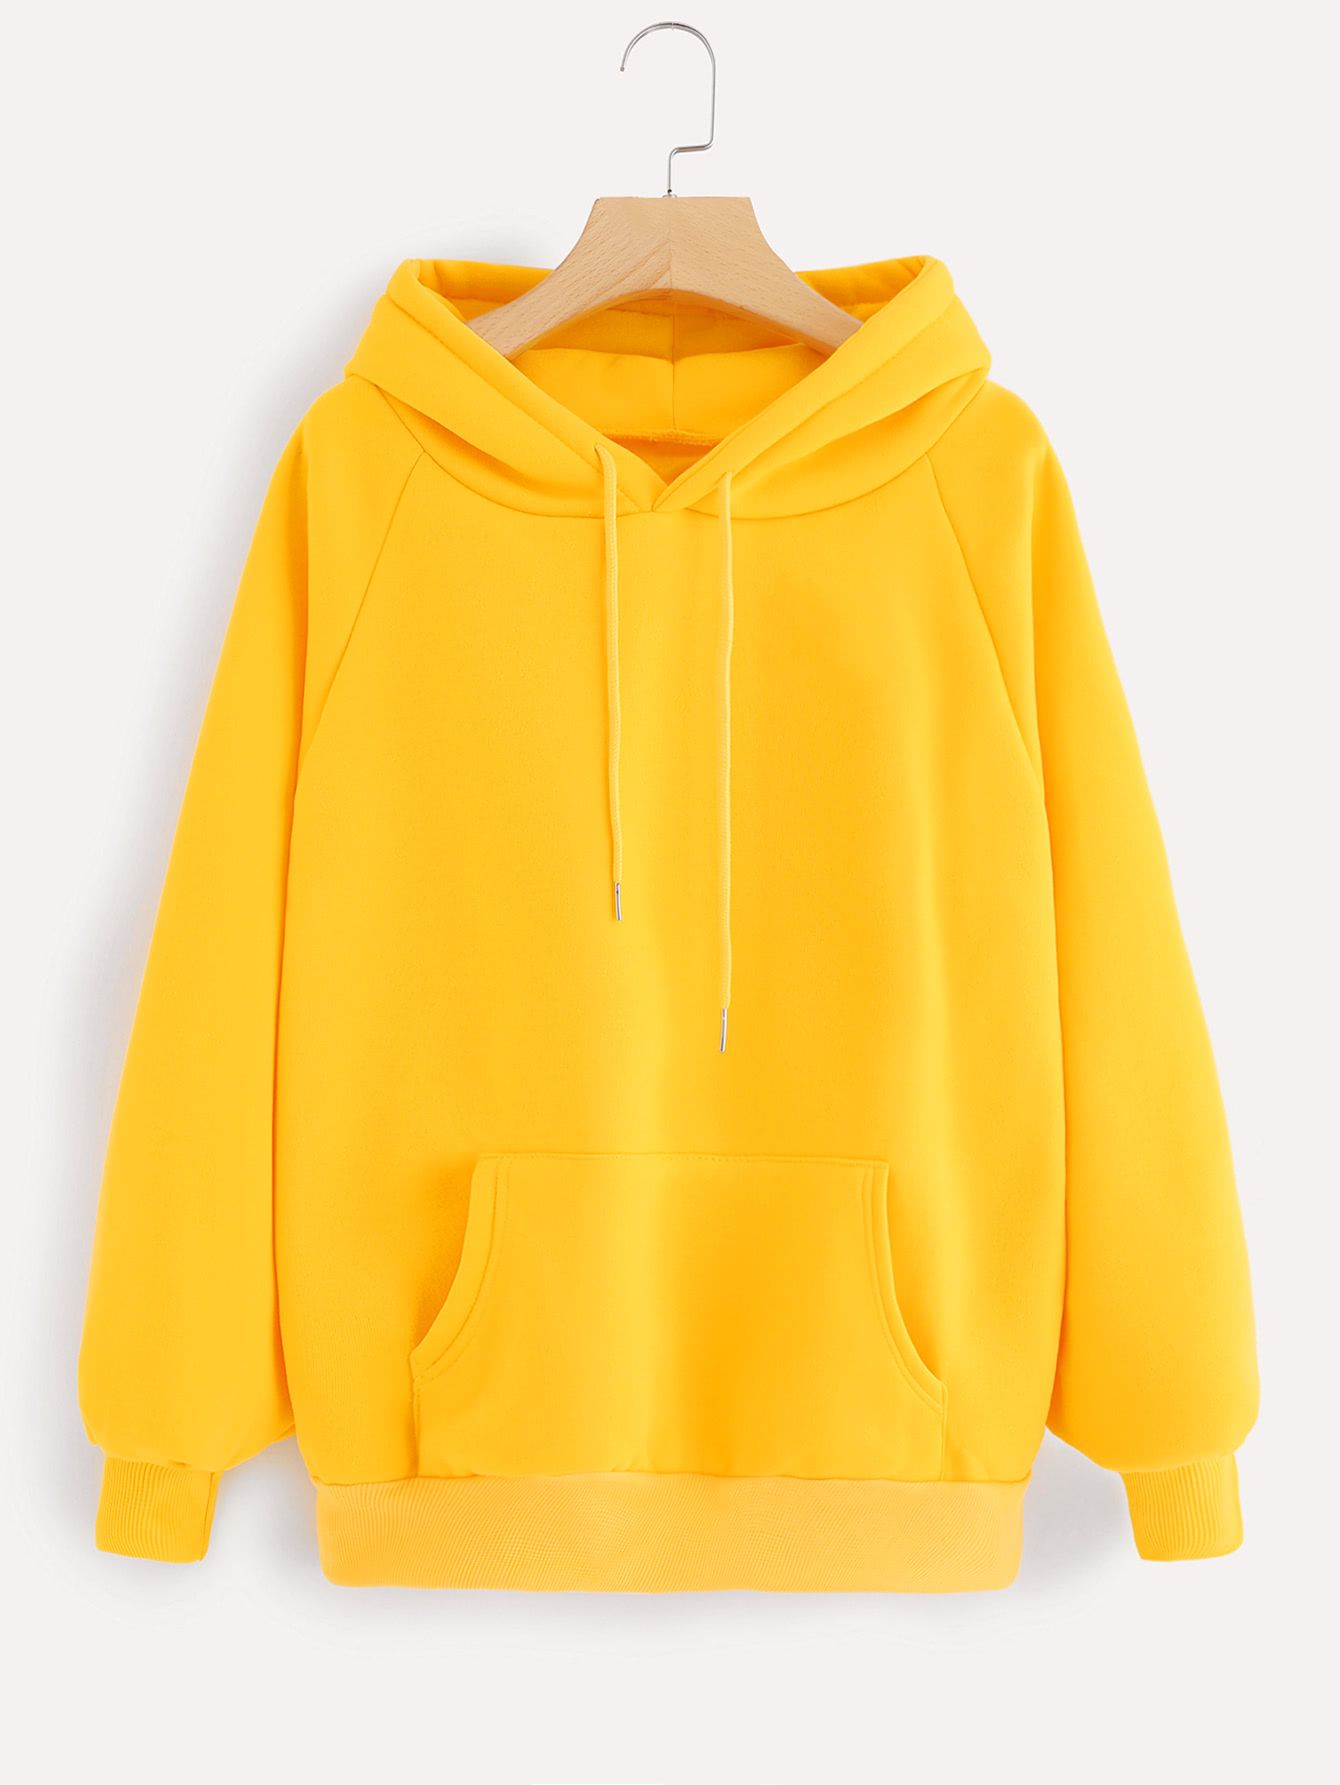 Romwe Womens Hoodie Sweatshirts Casual Long Sleeve Pullover Top with Pockets